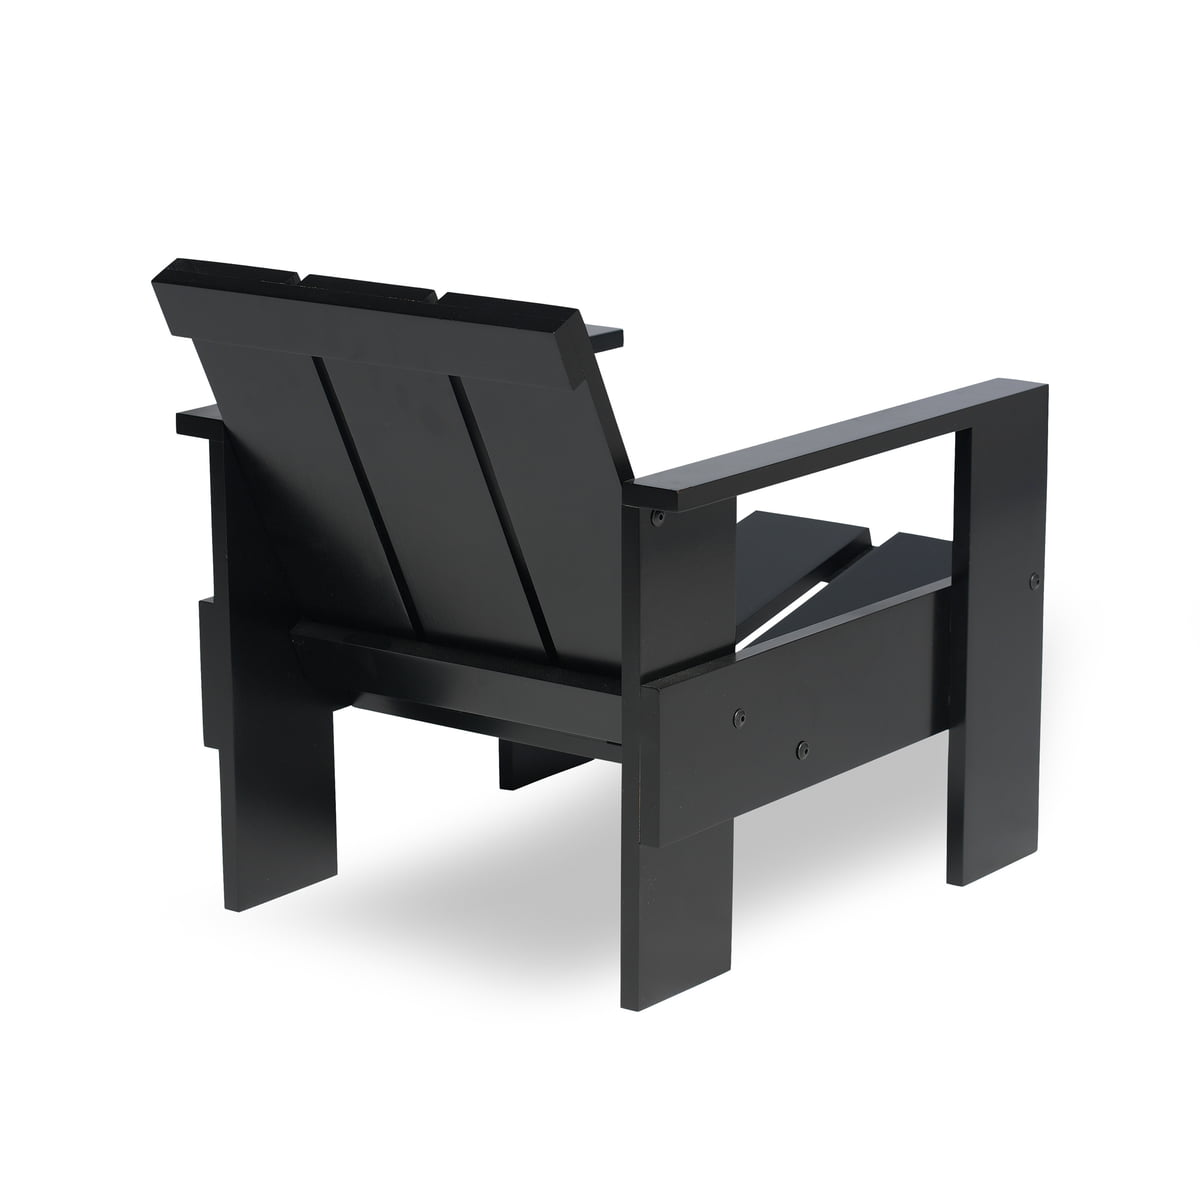 Wonderful Spectrum   Gerrit Rietveld Junior Crate Chair, Black